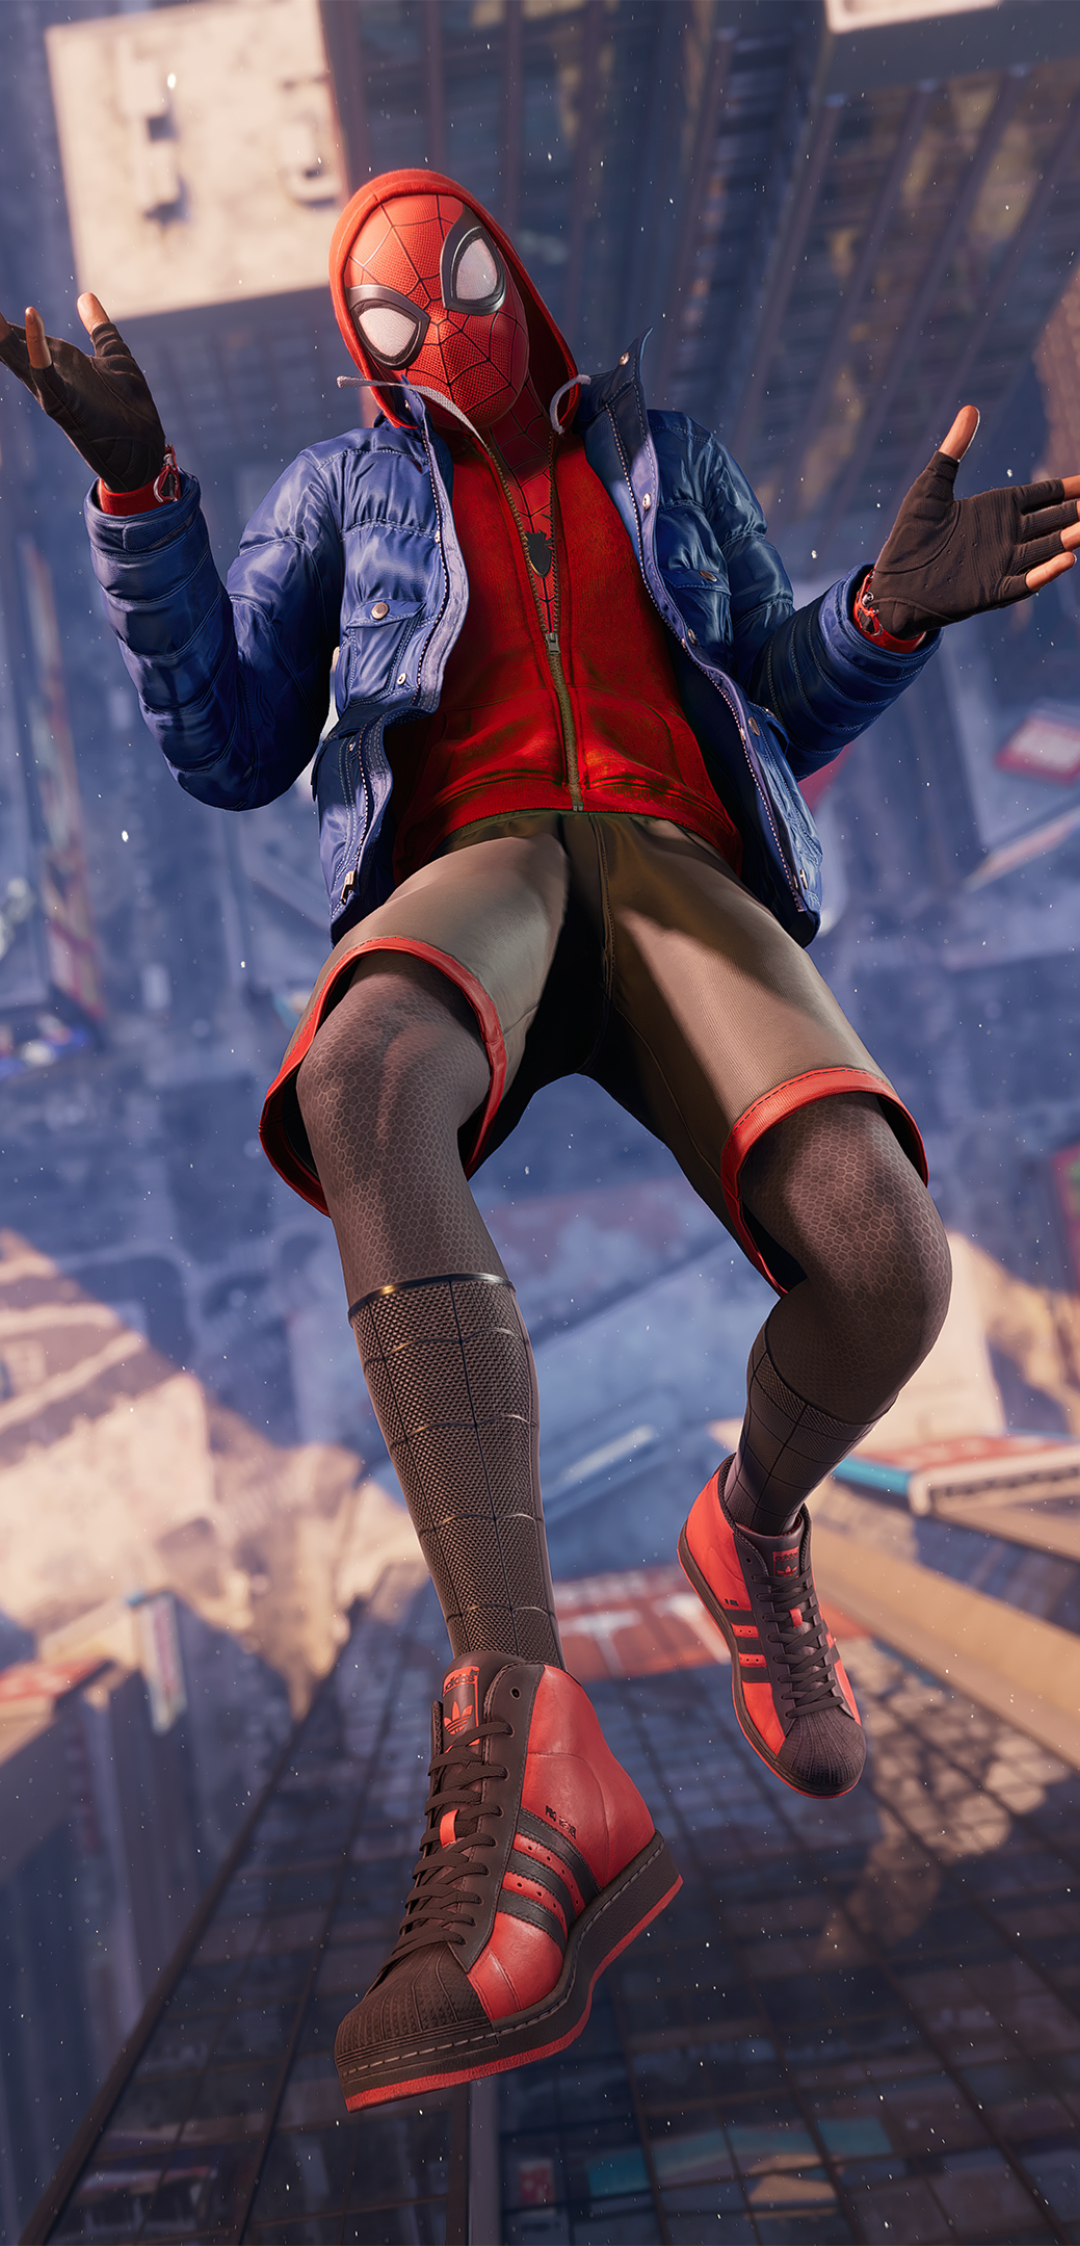 1080x2246 Miles Morales Spider-Man Falling Cool 1080x2246 ...